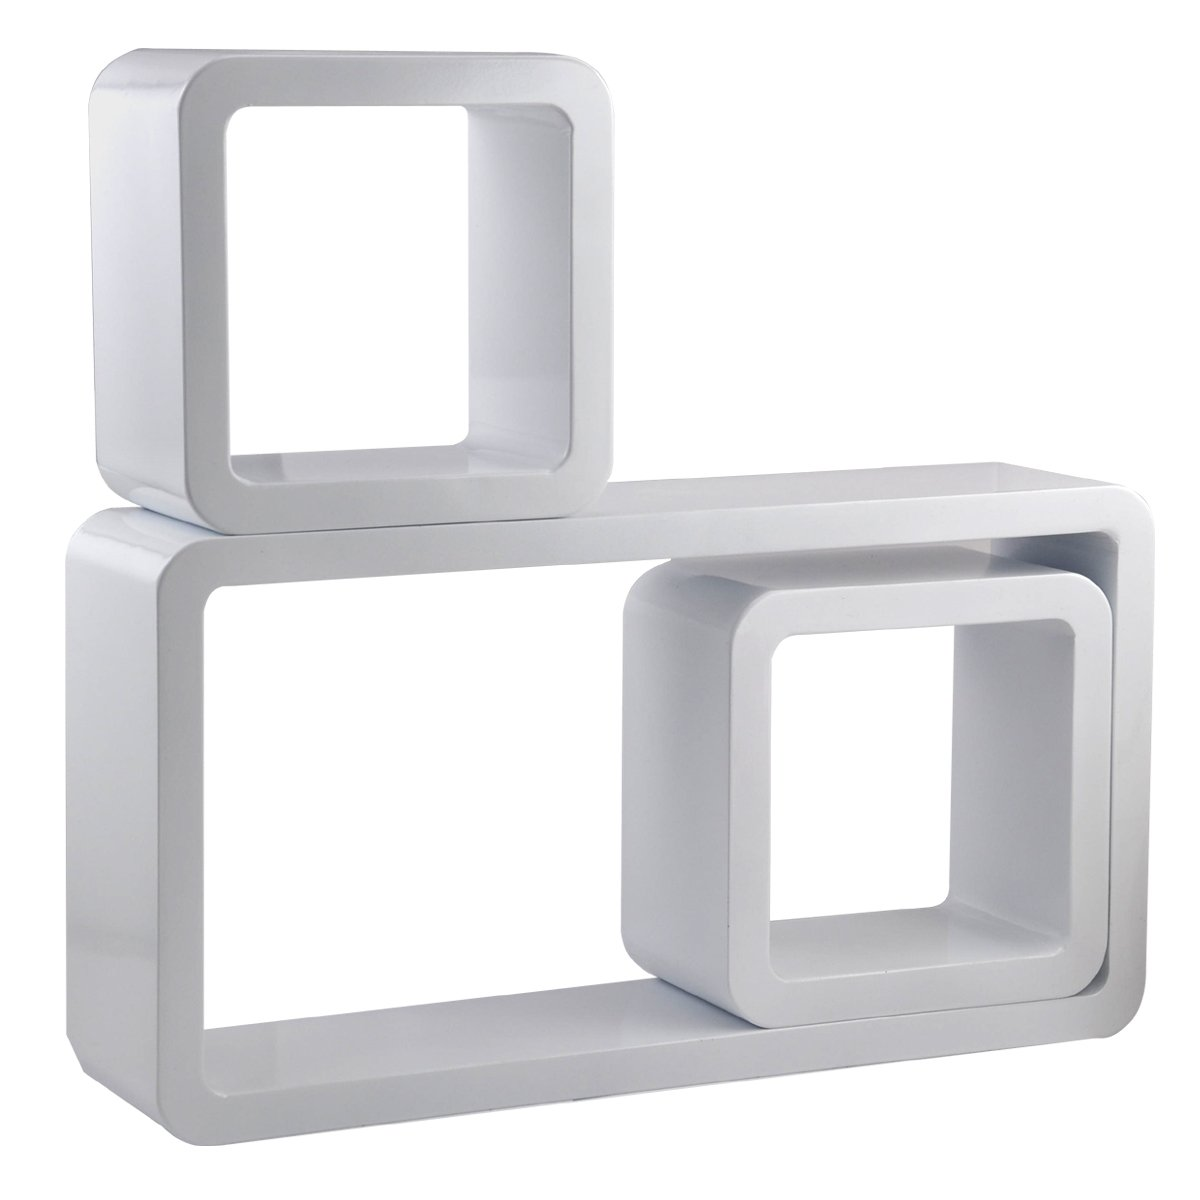 chinkyboo wall rectangle floating wall shelves storage display cubes shelf for cd dvd book white amazoncouk kitchen u0026 home